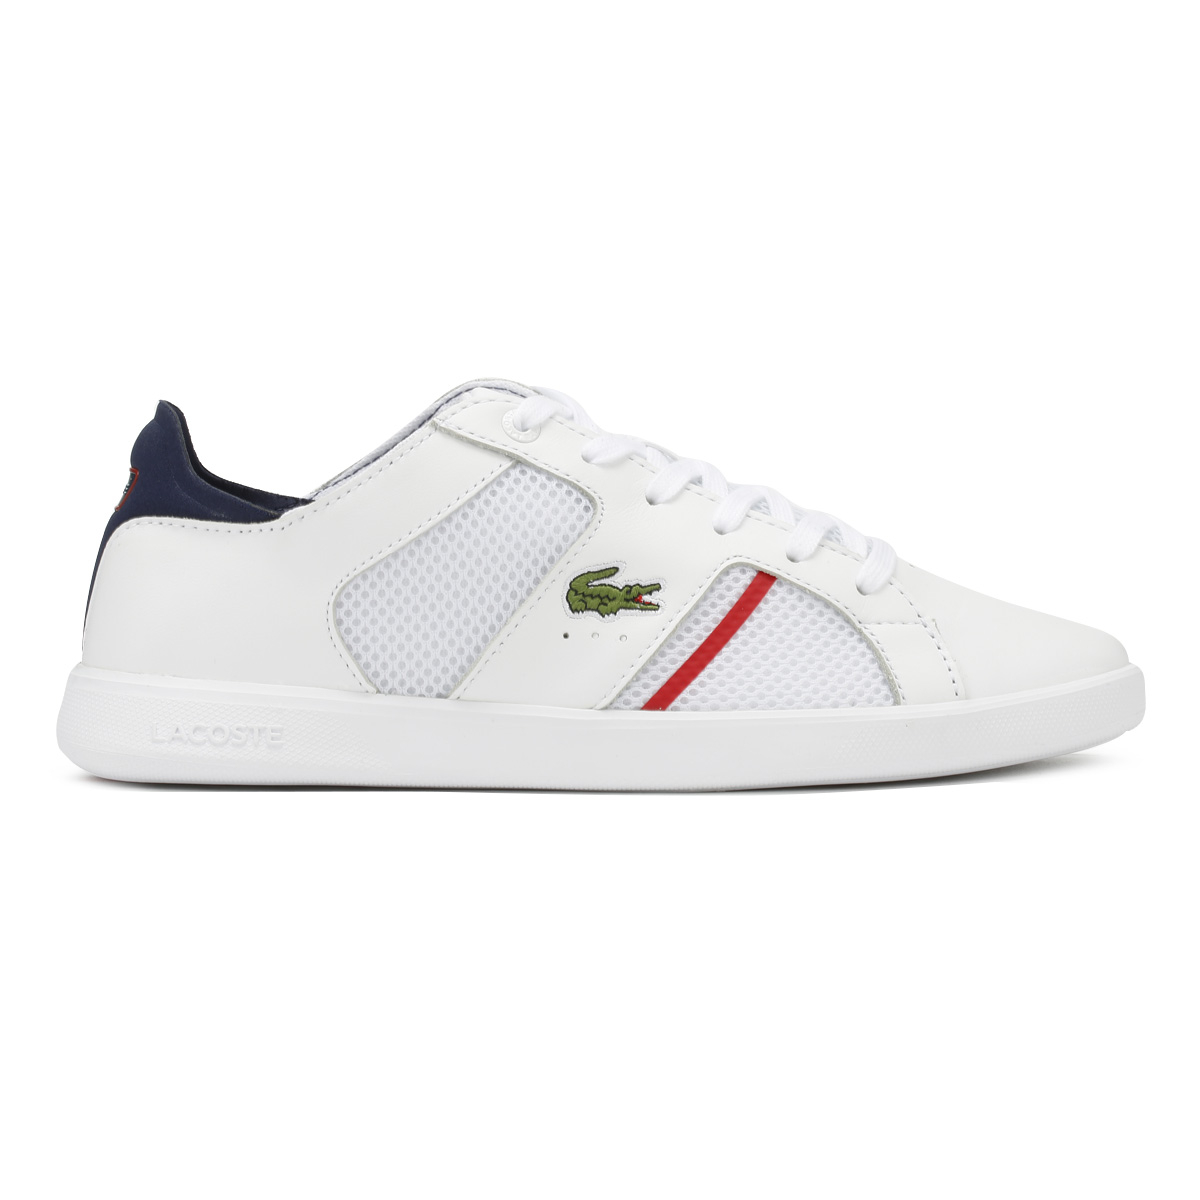 Lacoste hommes Trainers & blanc & Trainers Navy Novas 218 1 Sport Casual Lace Up Chaussures 169fd3